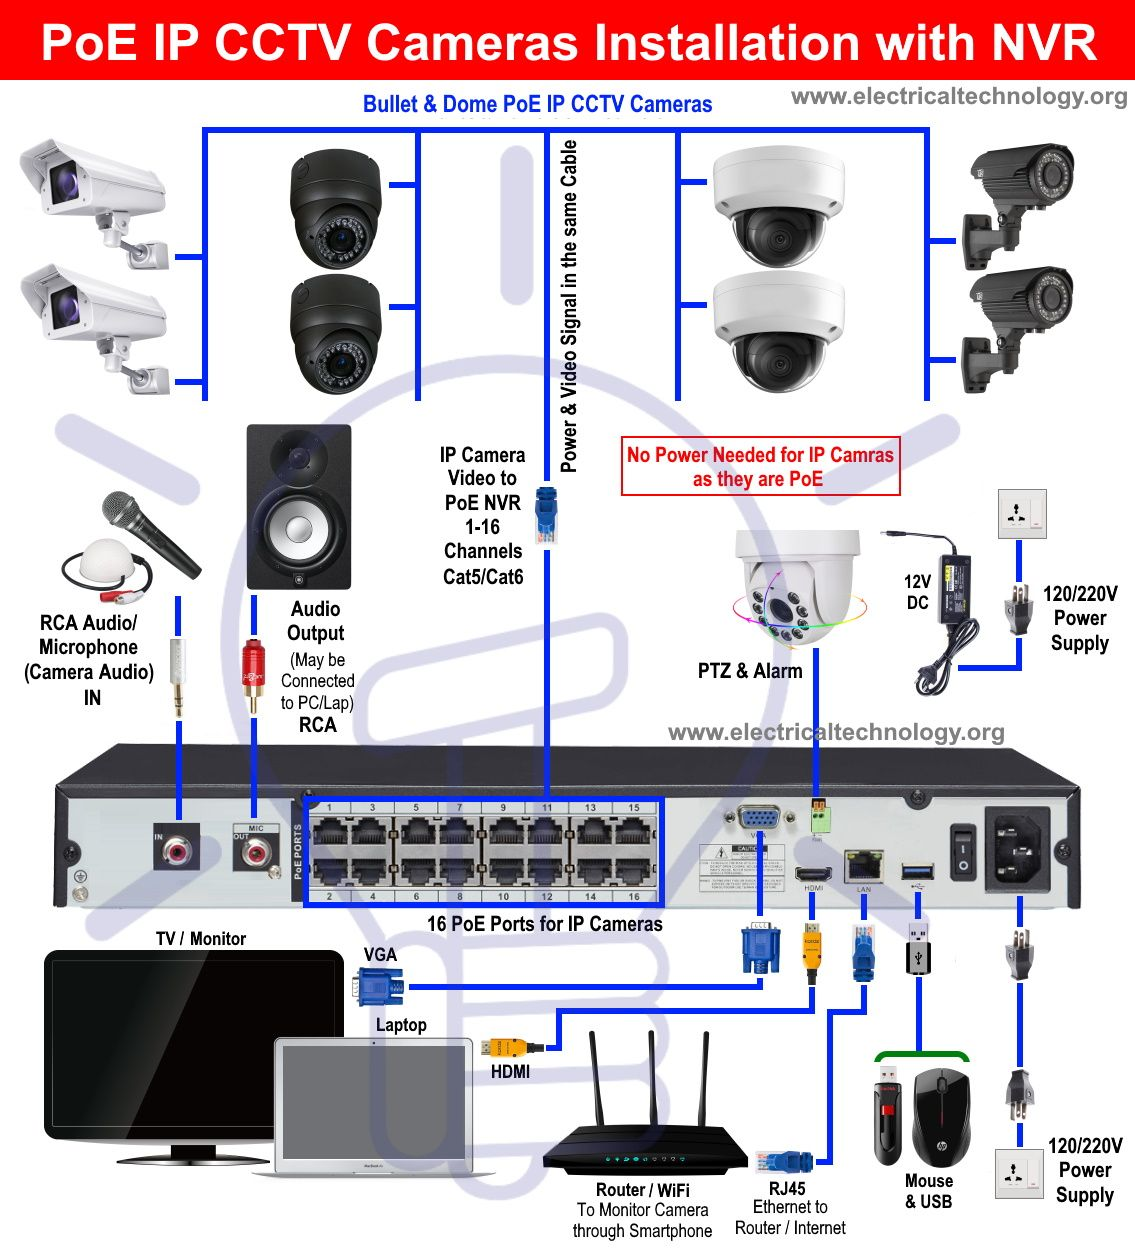 How To Install Poe Ip Cctv Cameras With Nvr Security System Cctv Camera Installation Cctv Camera Diy Security Camera